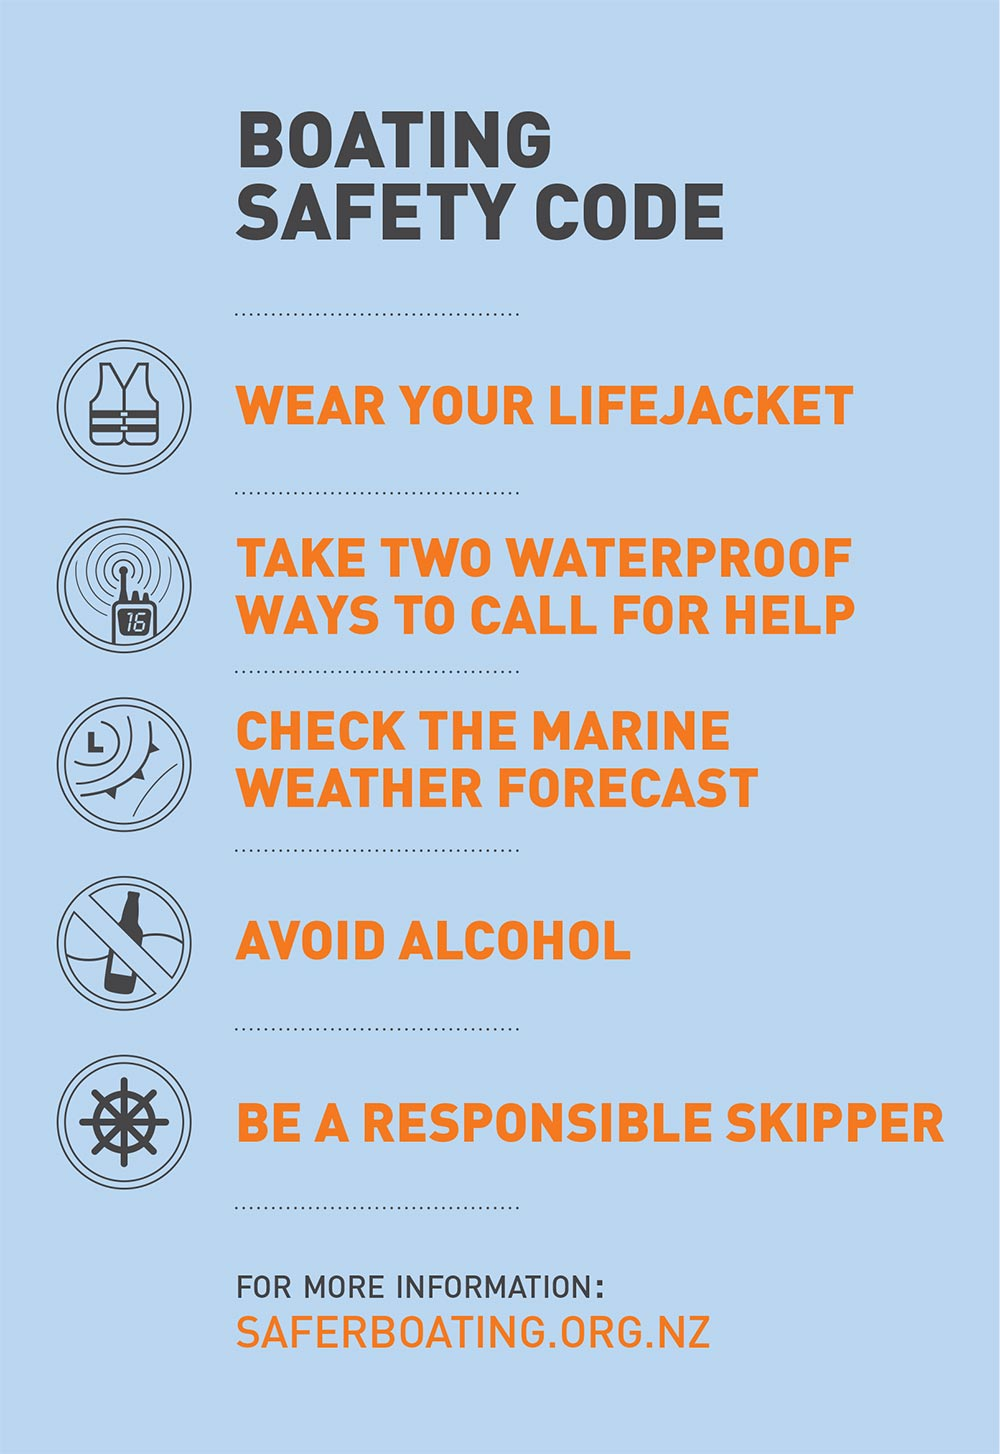 Boating safety code